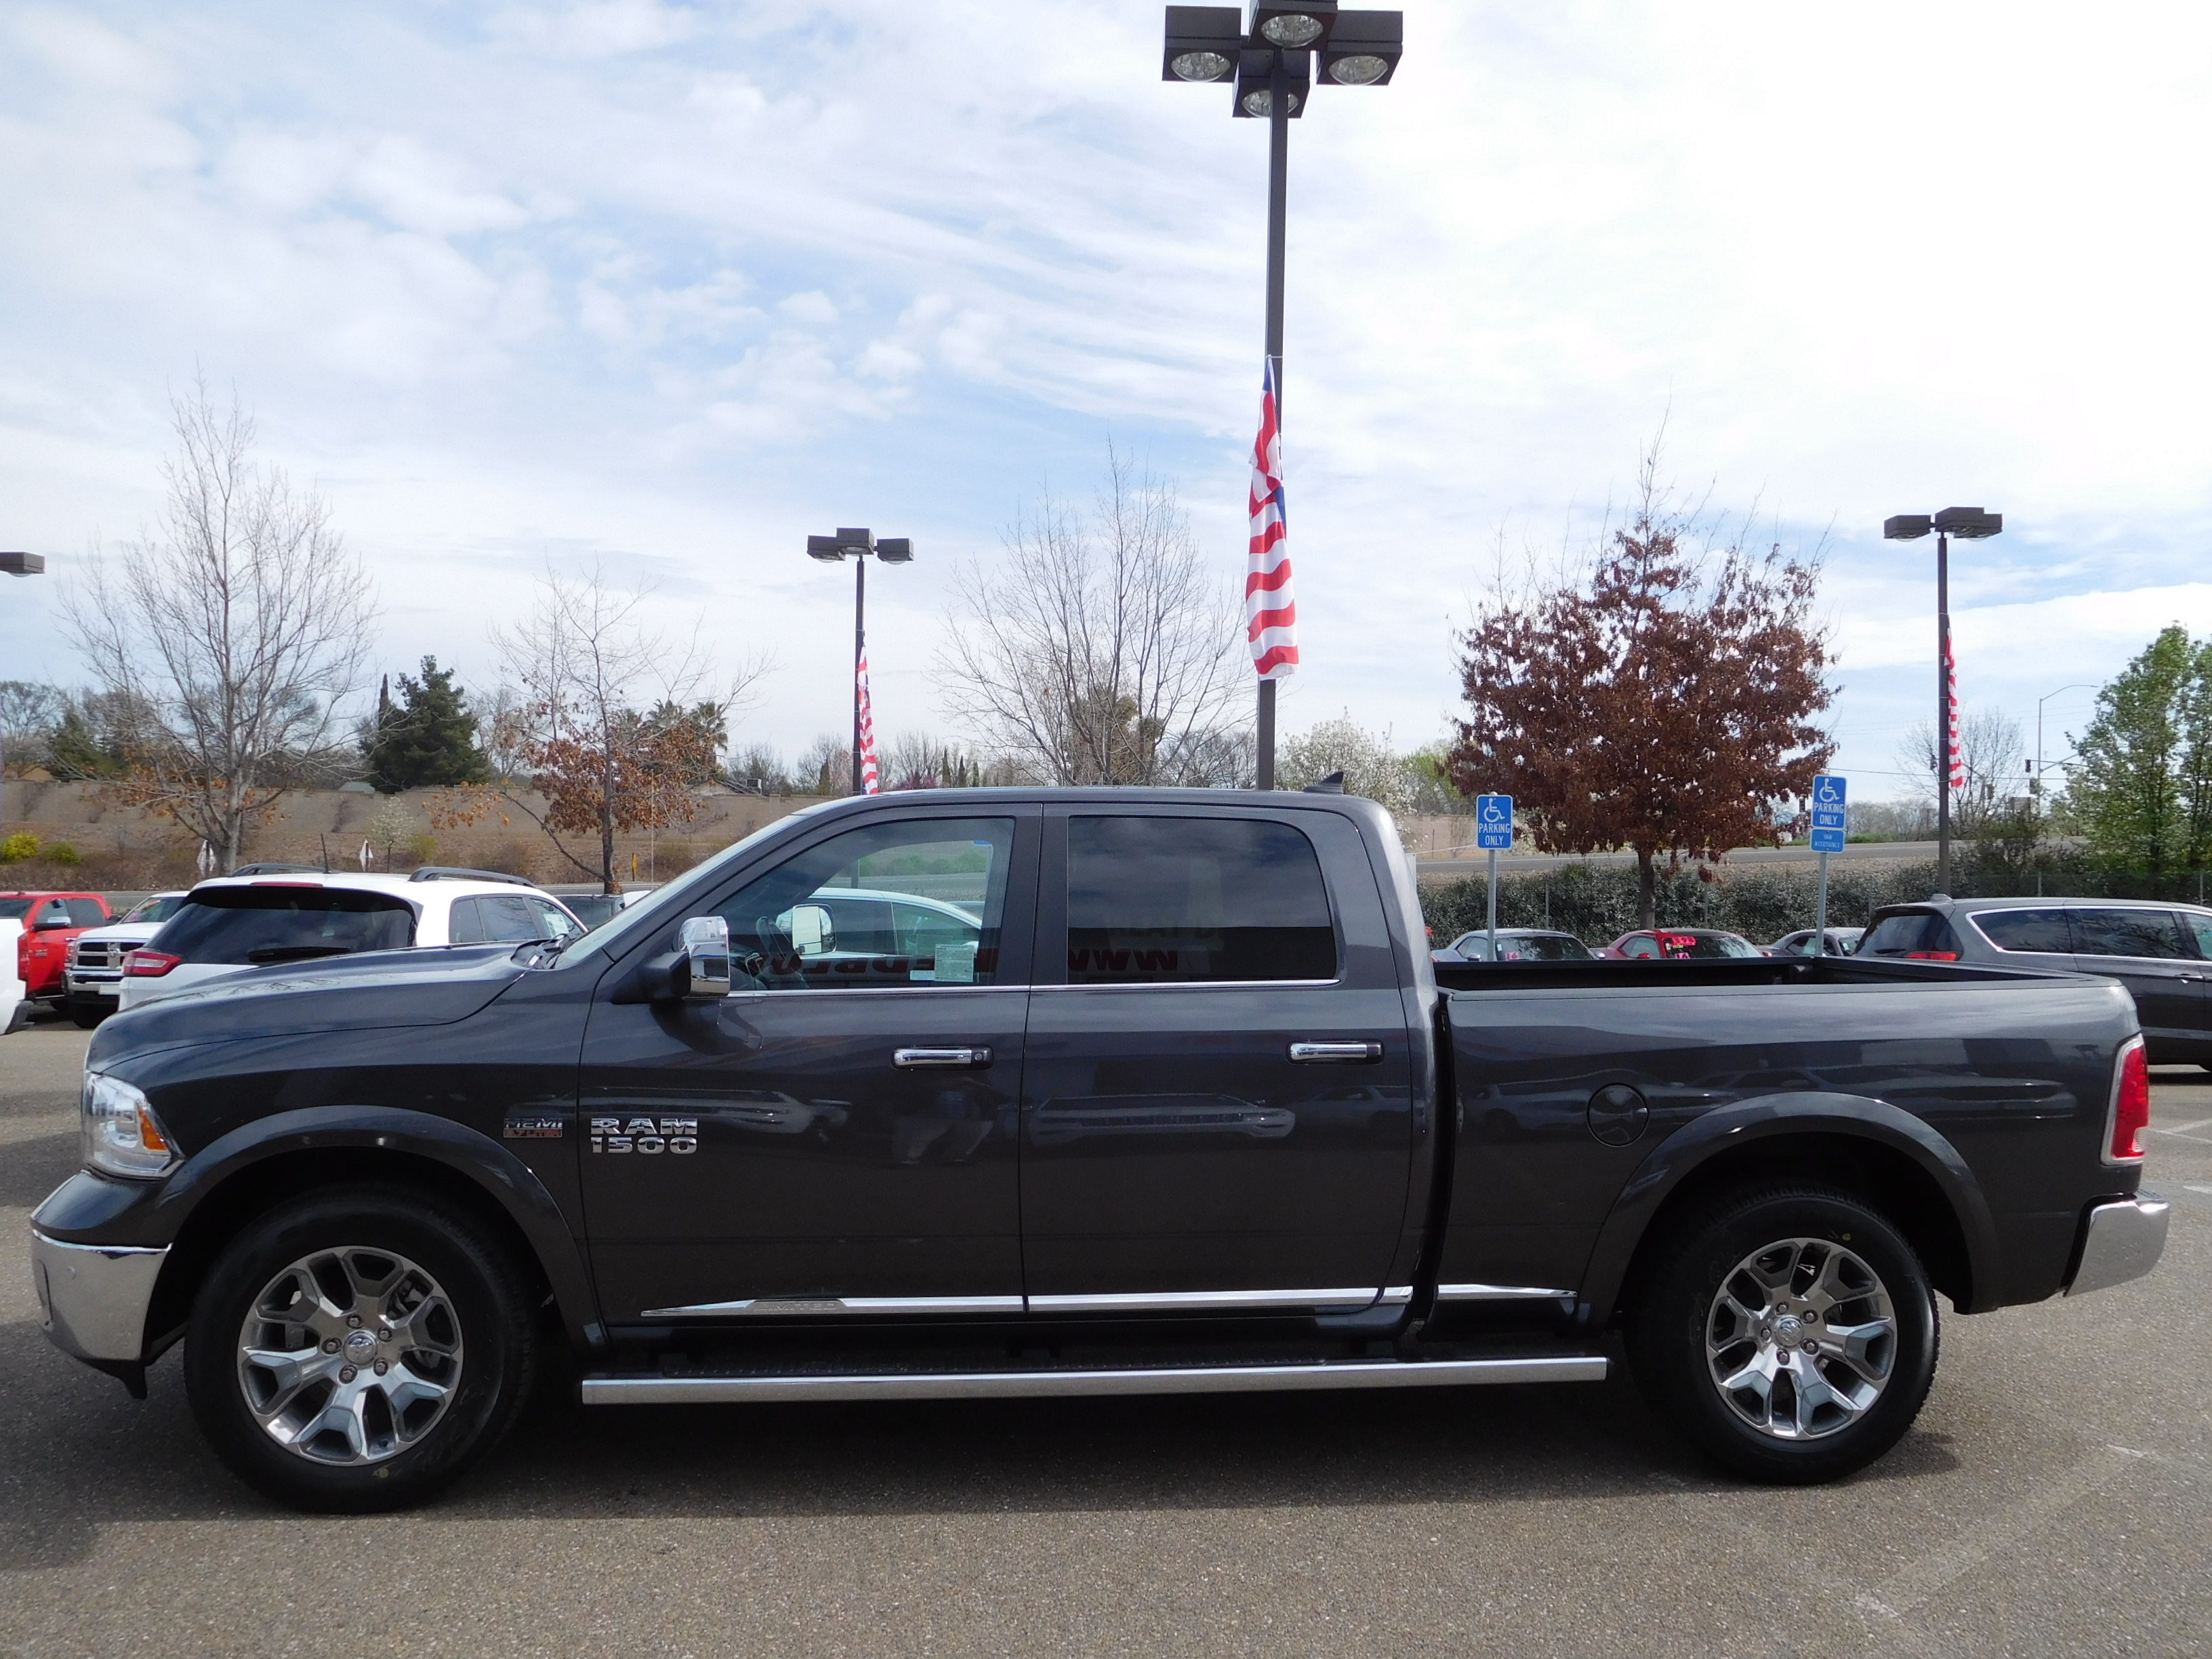 Red Bluff Dodge >> New 2017 Ram 1500 Crew Cab, Pickup | For Sale in Red Bluff, CA